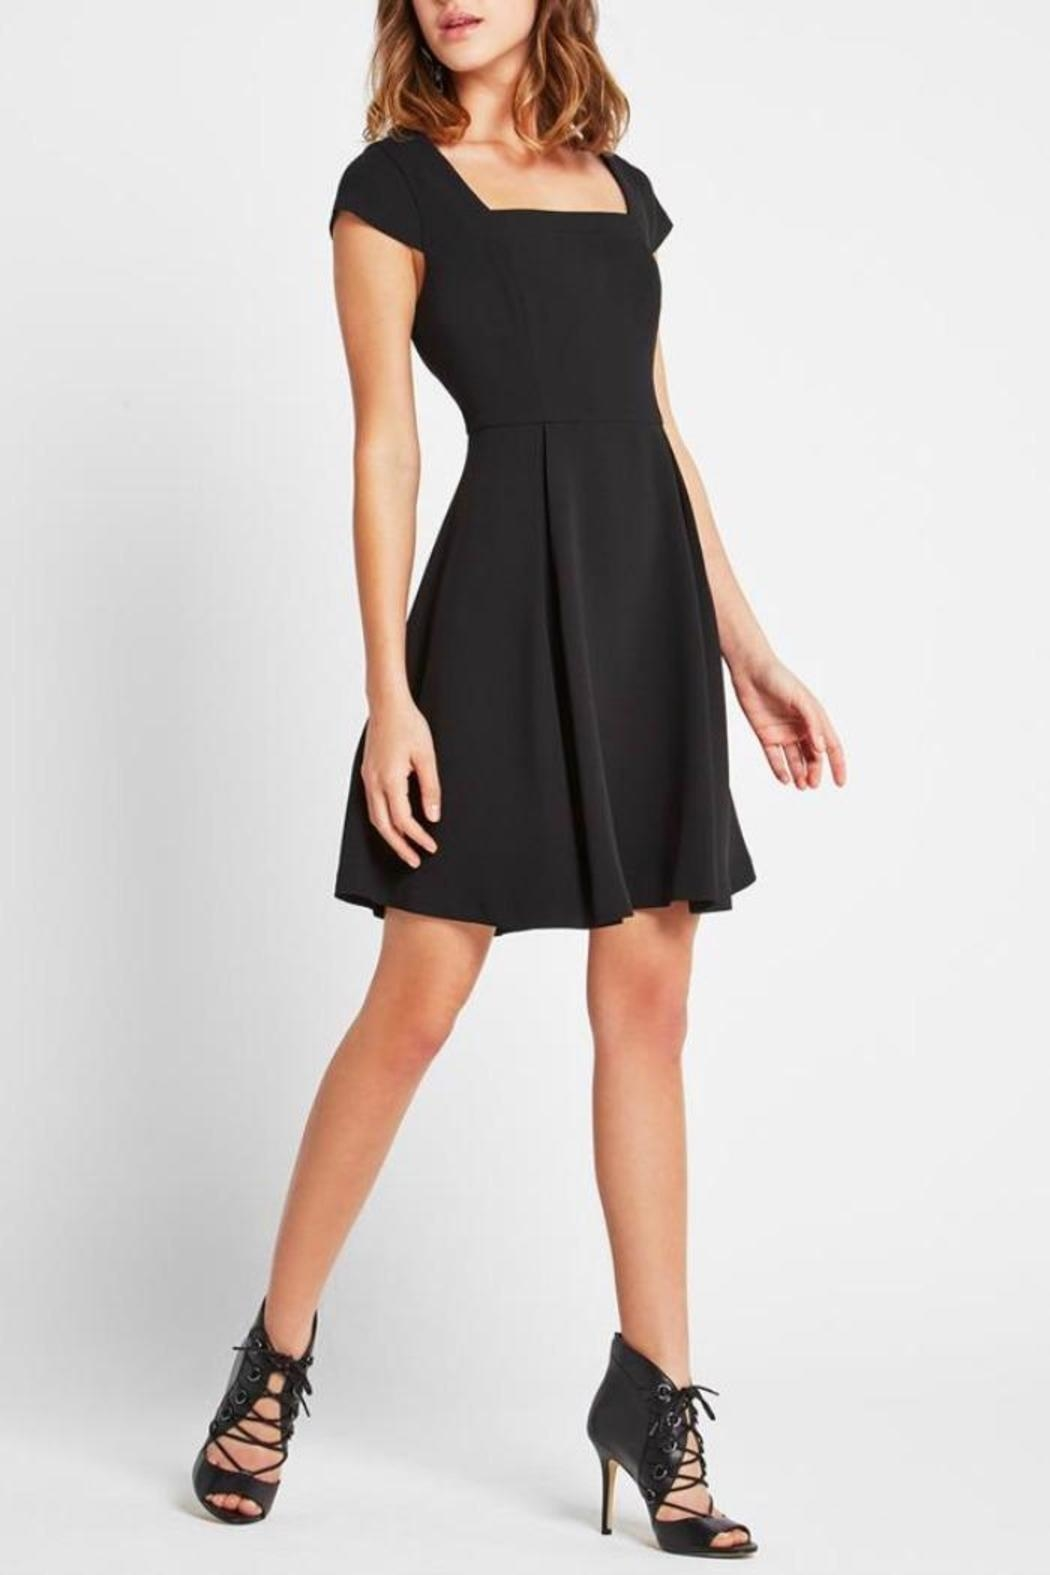 BCBGeneration Classic Black Dress - Front Full Image